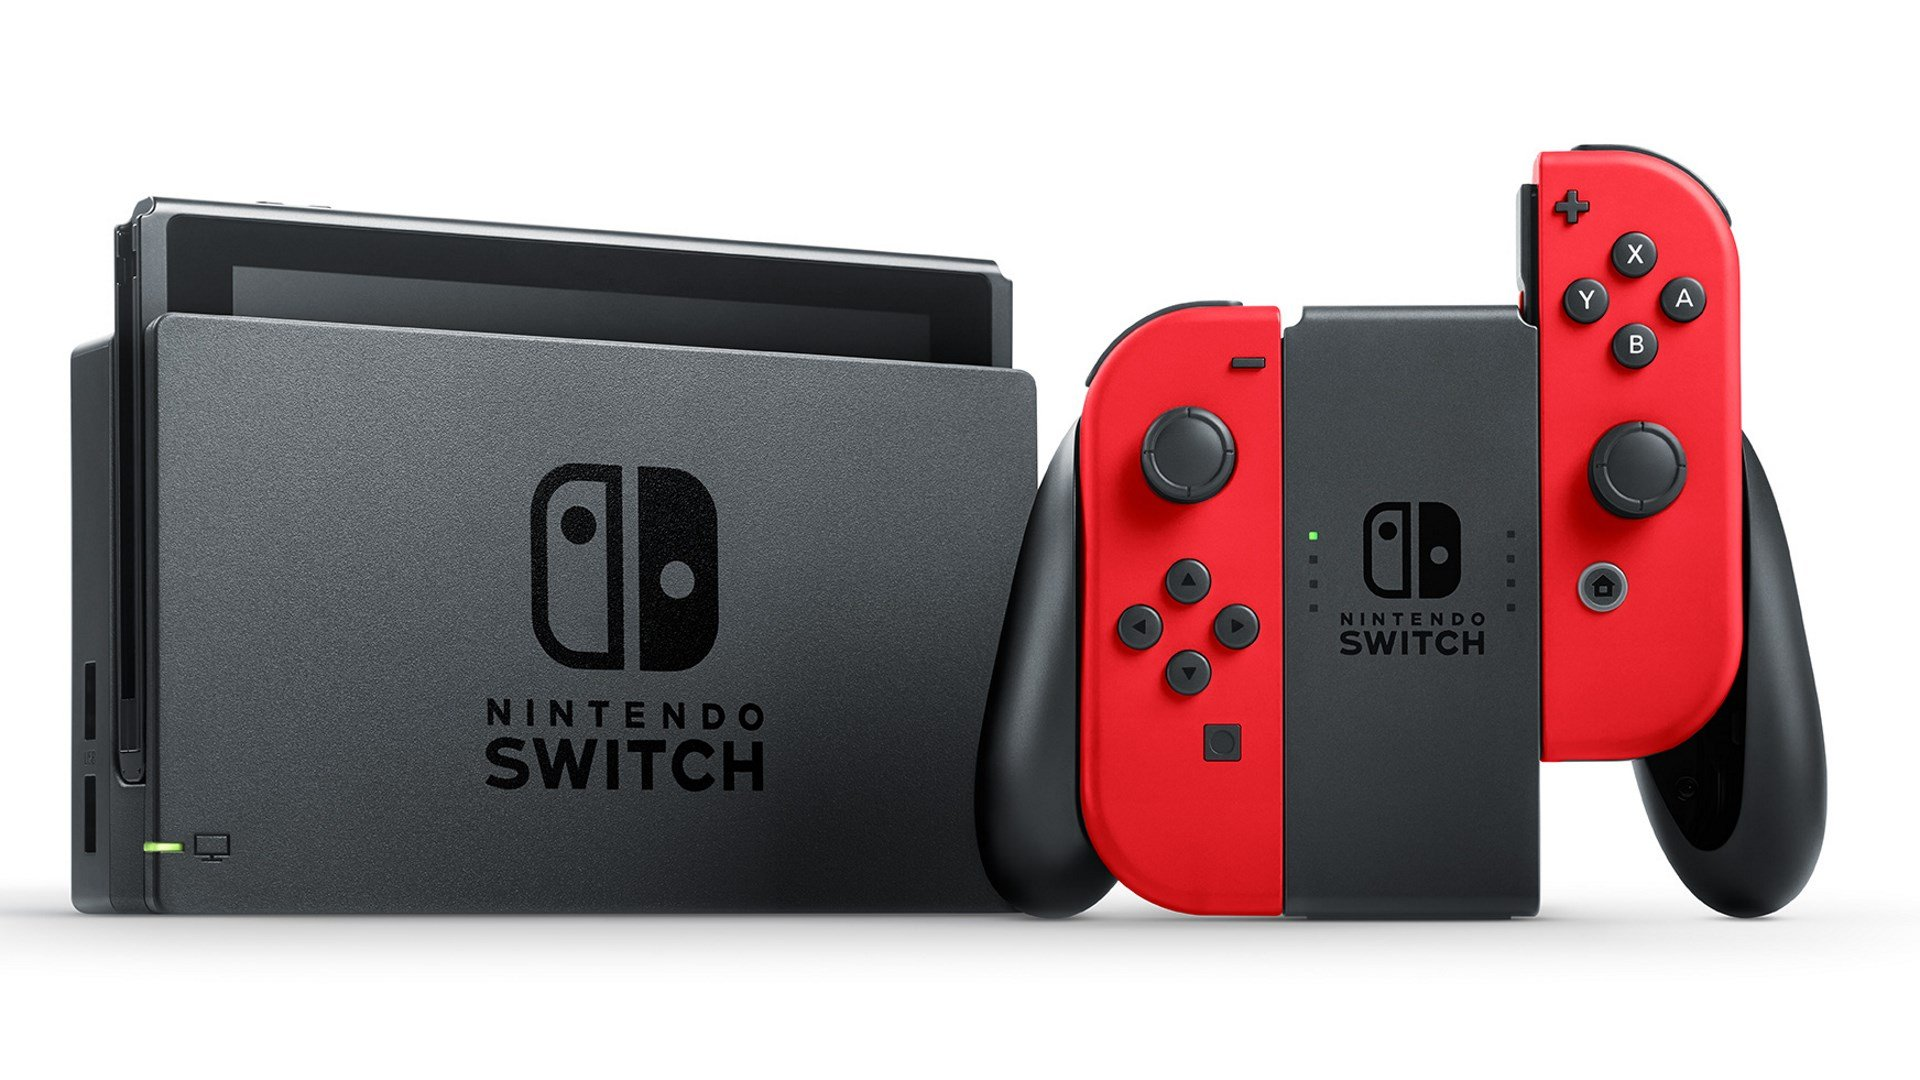 Nintendo Switch new model details